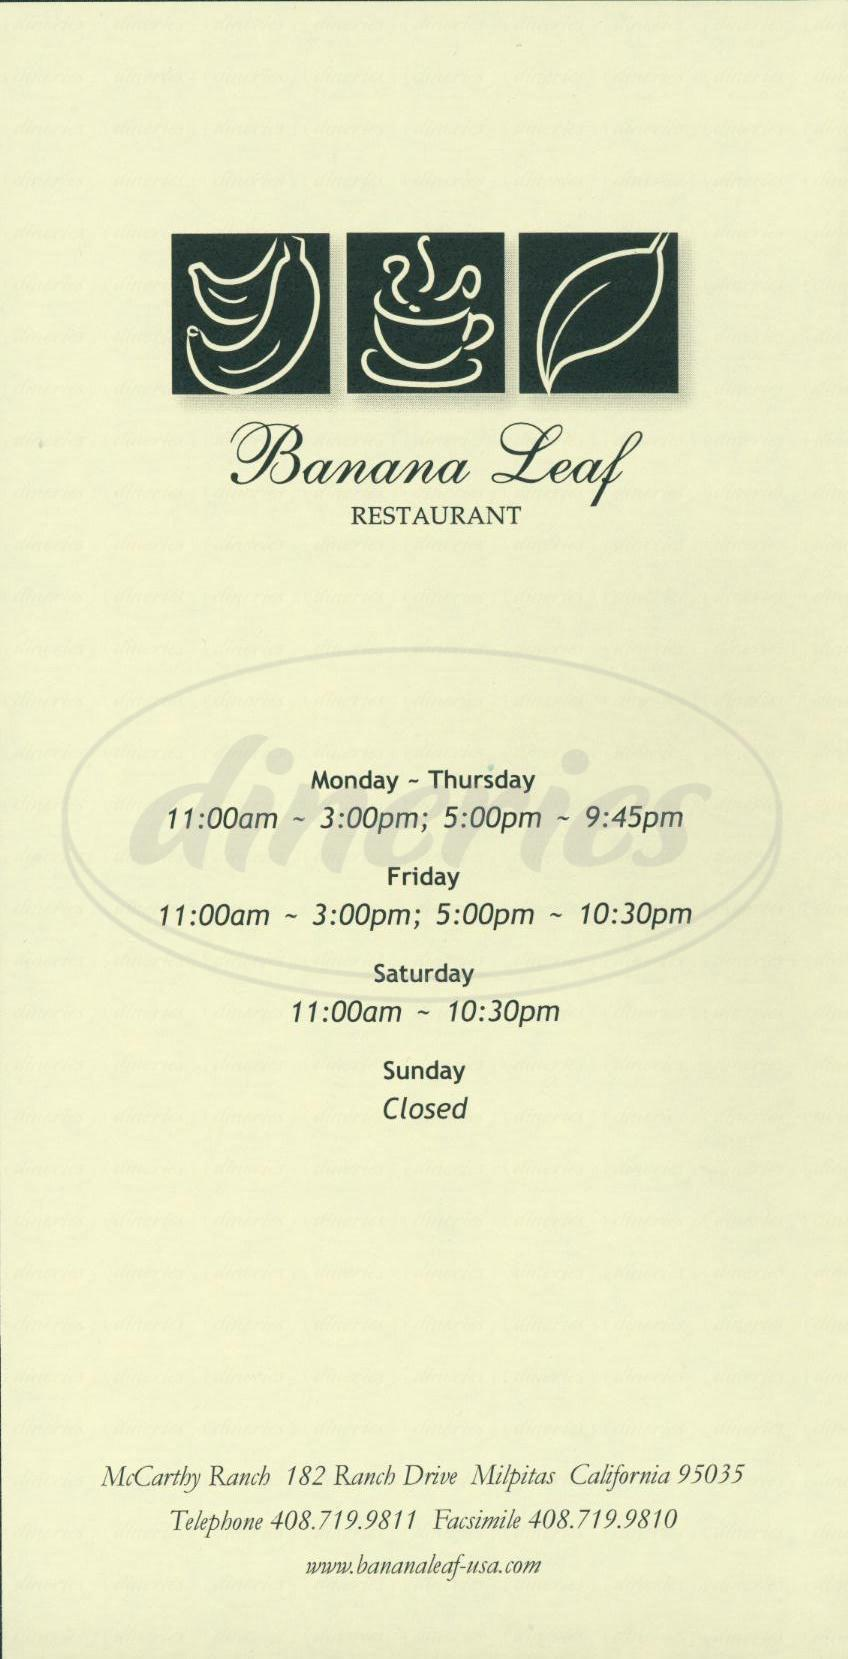 menu for Banana Leaf Restaurant